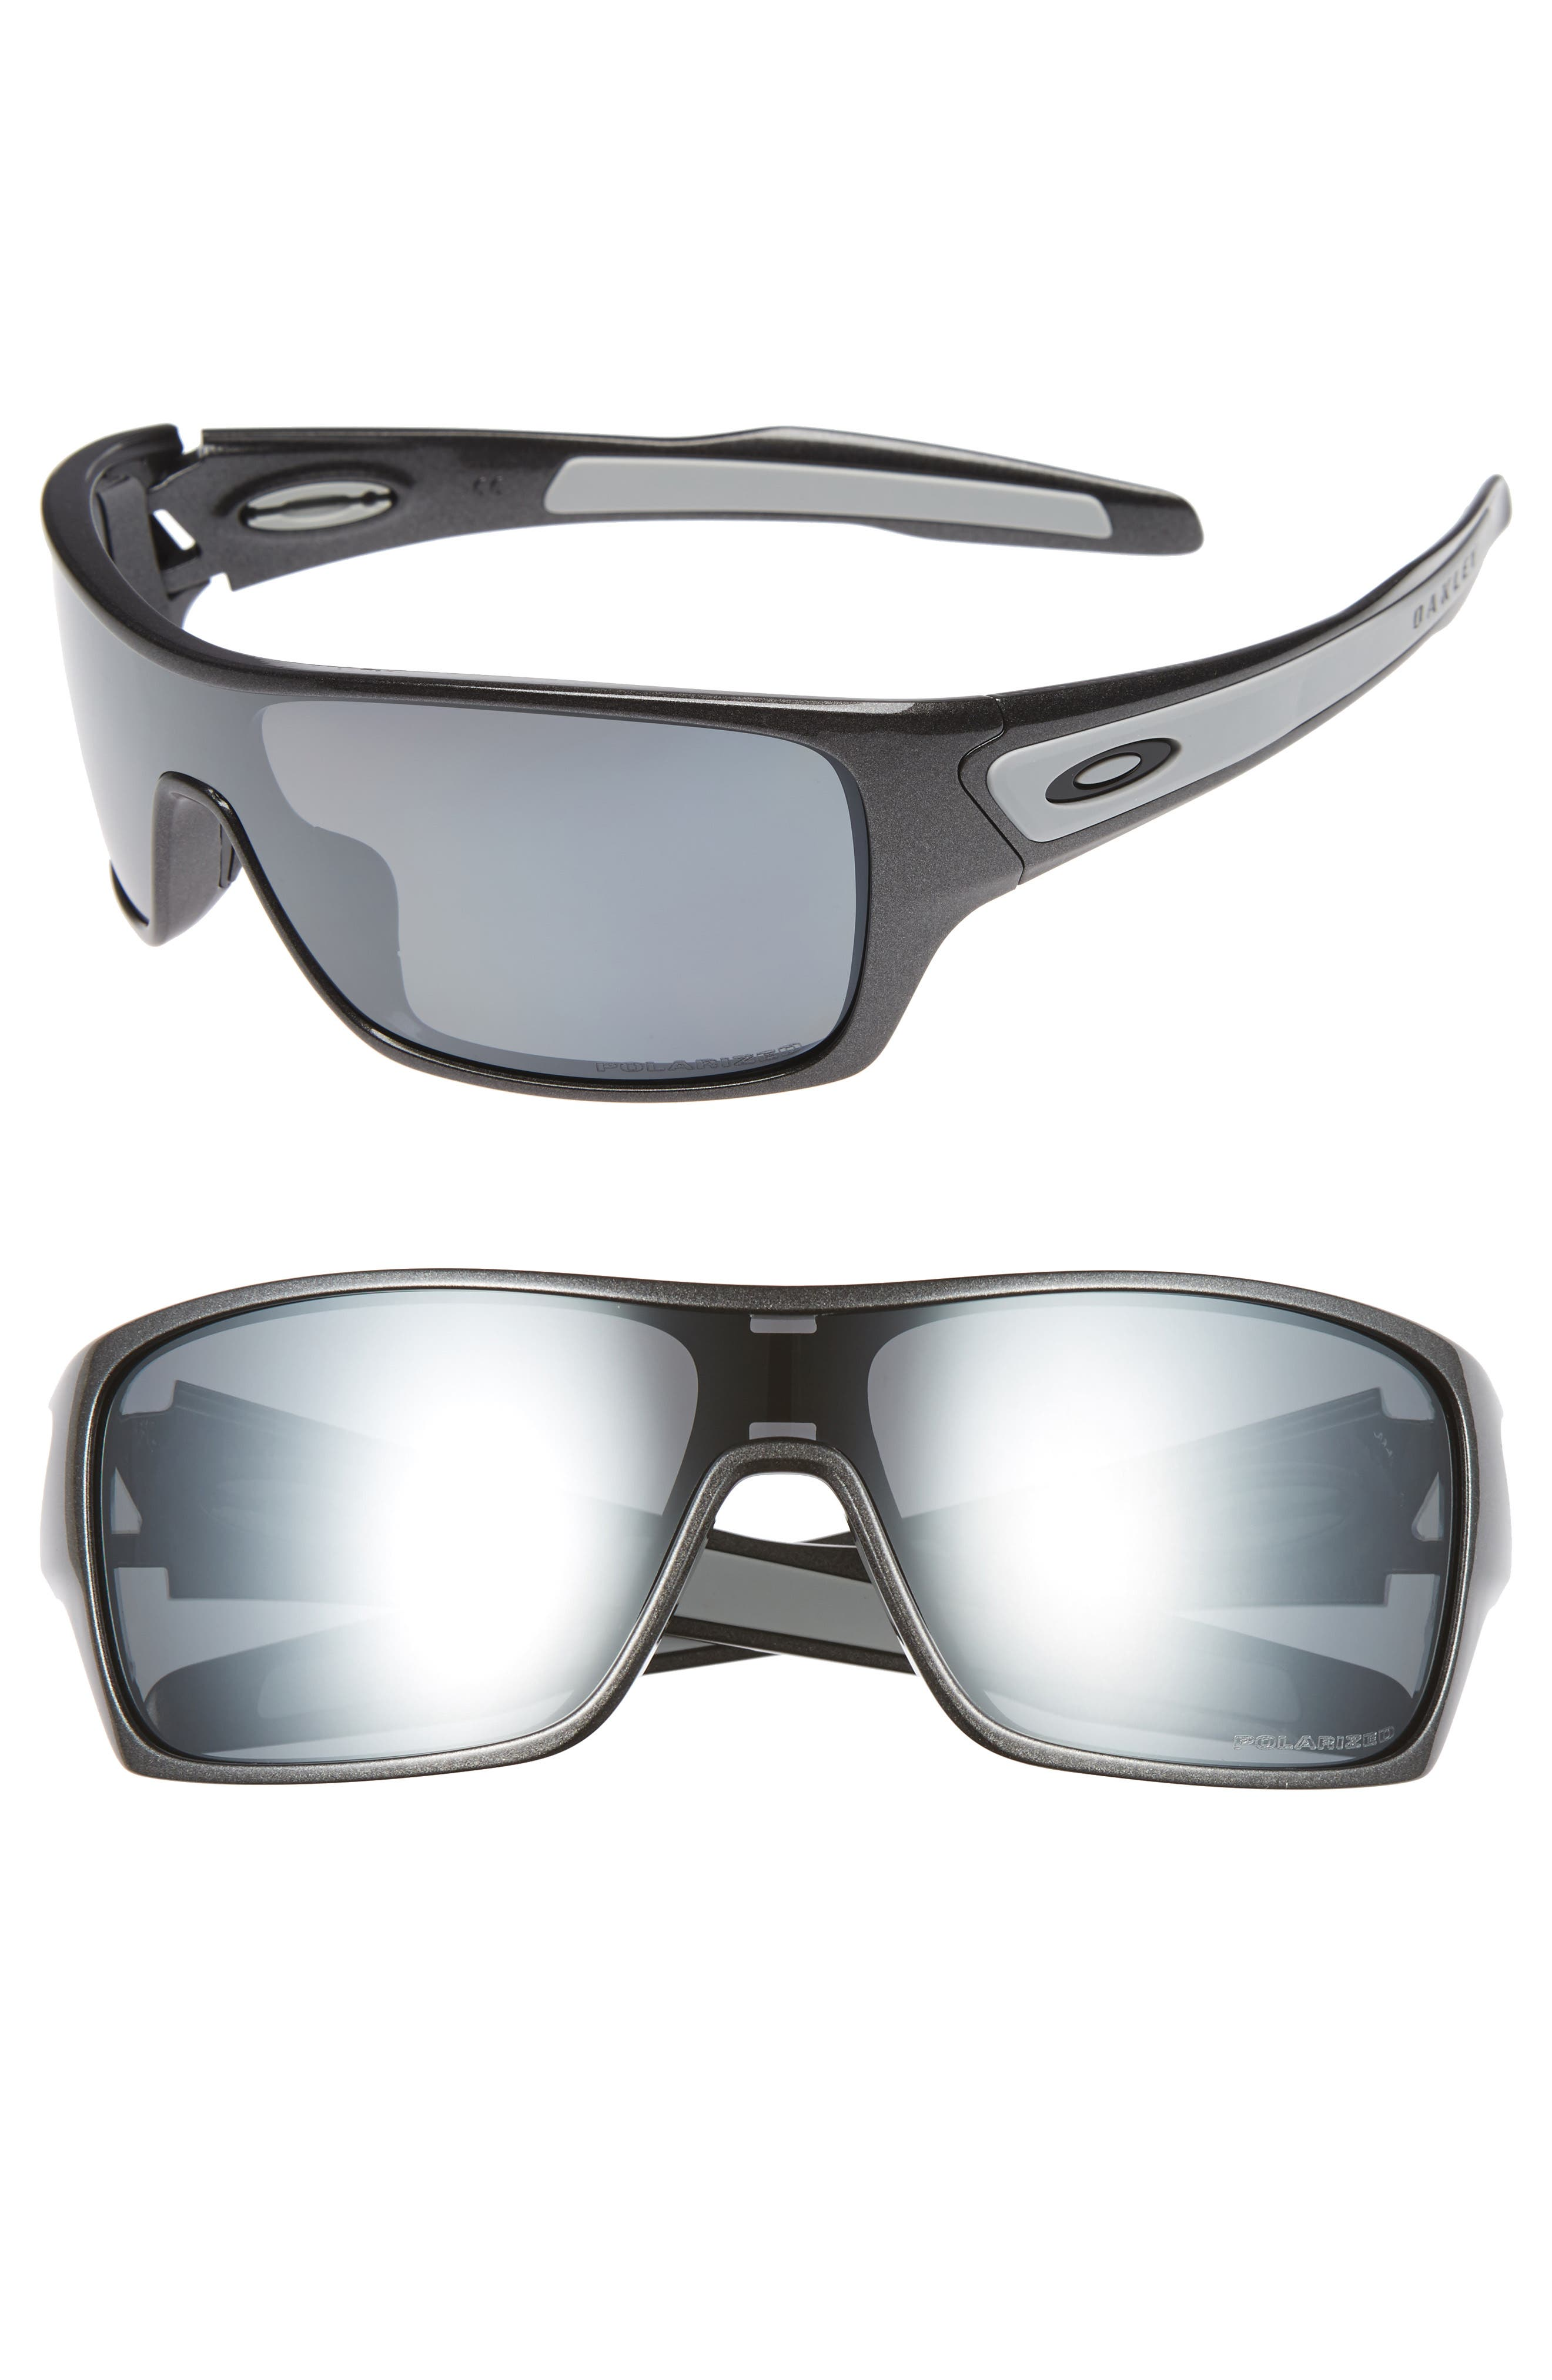 Oakley Turbine Rotor 6m Polarized Sunglasses -